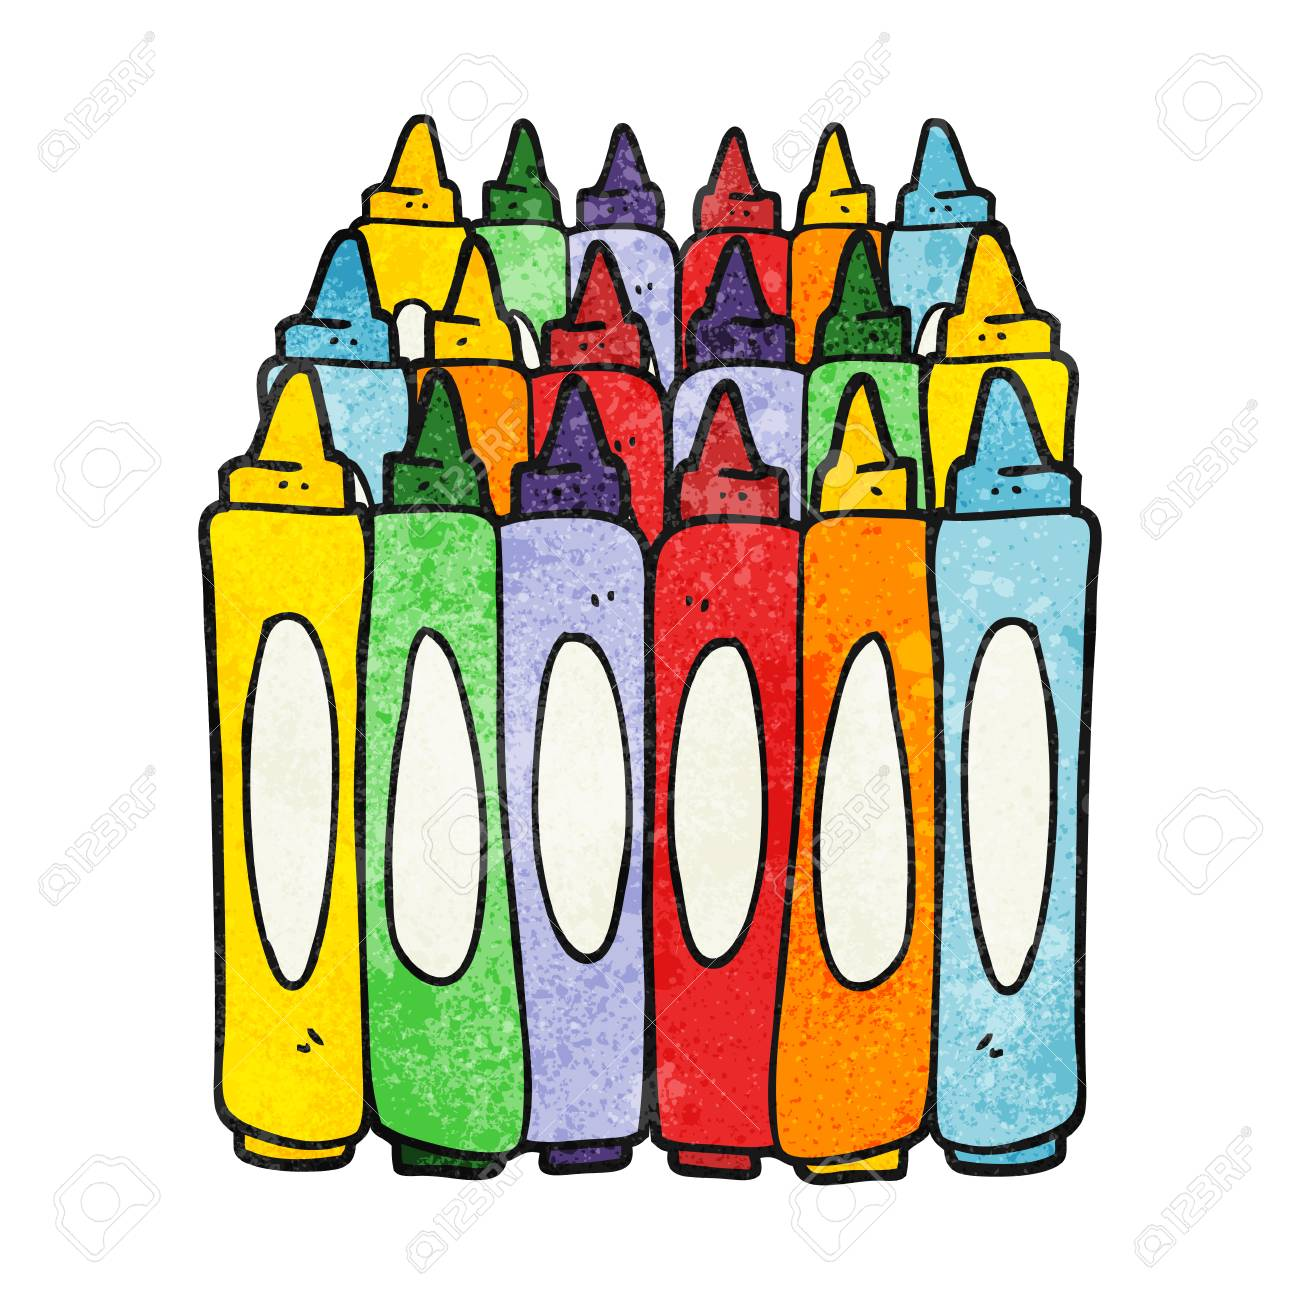 Freehand Drawn Texture Cartoon Crayons Royalty Free Cliparts